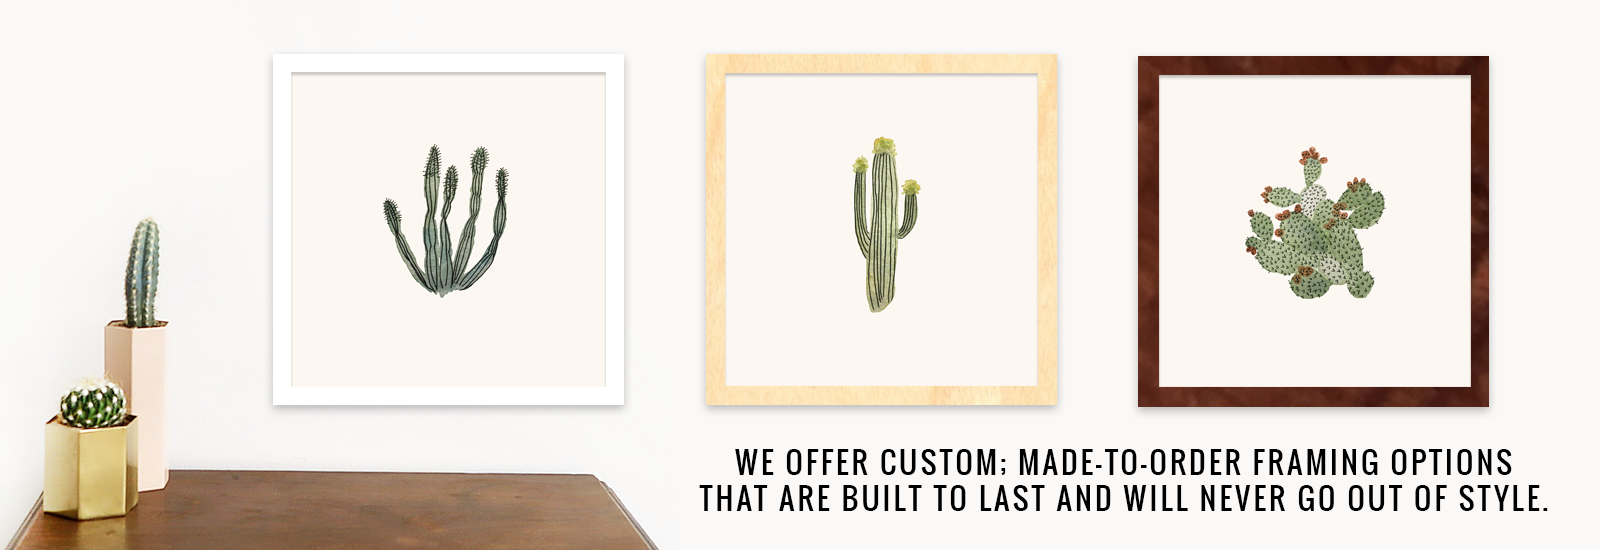 Made-to-Order Framing